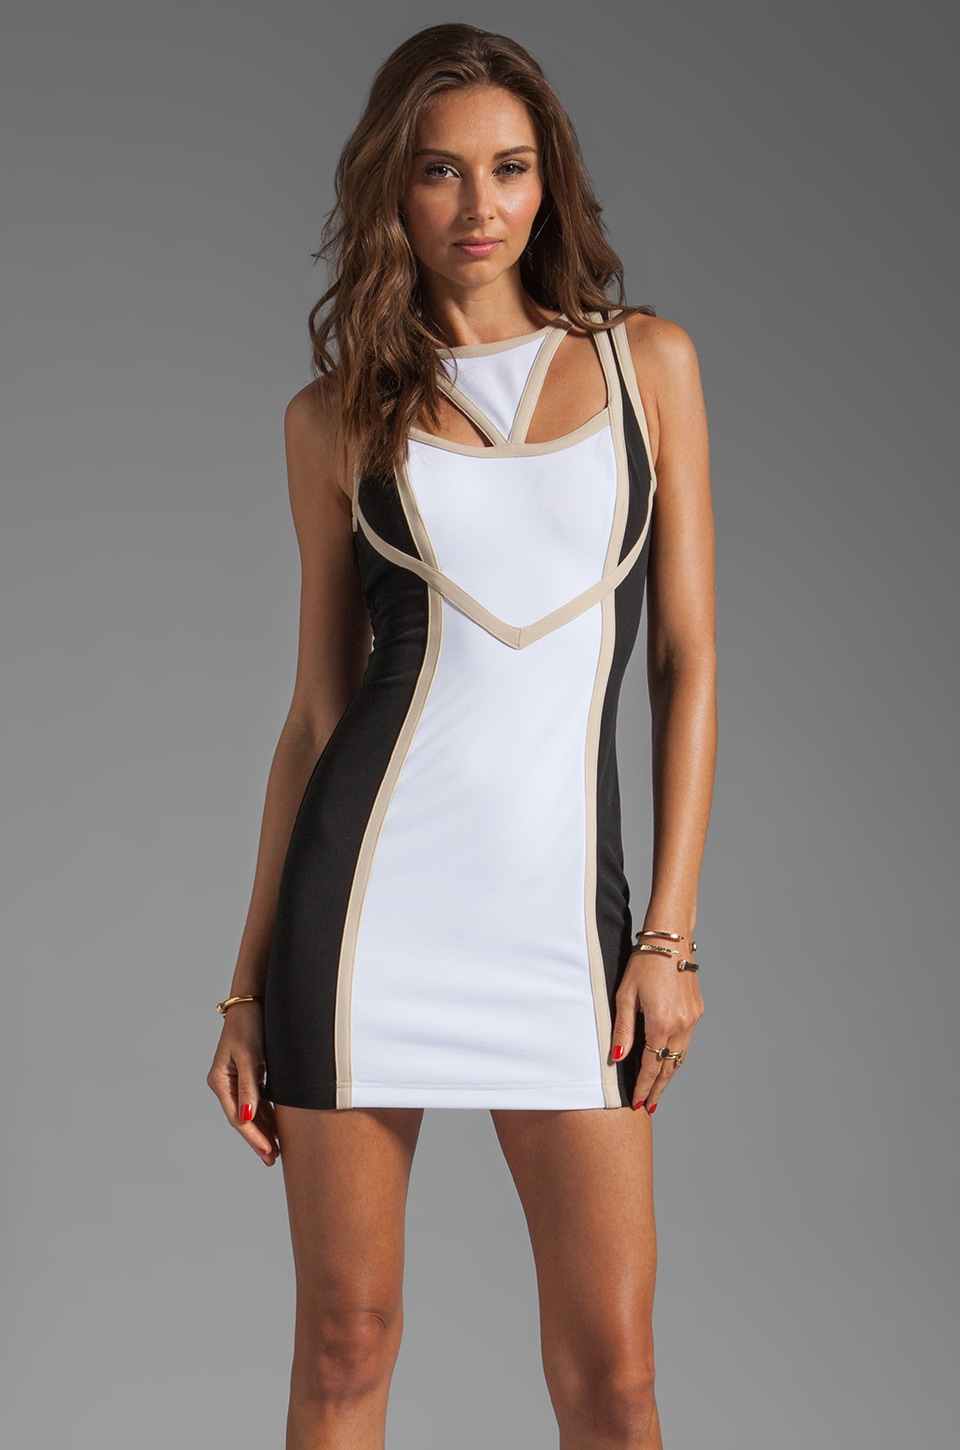 keepsake Never Miss a Beat Body Dress in White/Black/Beige